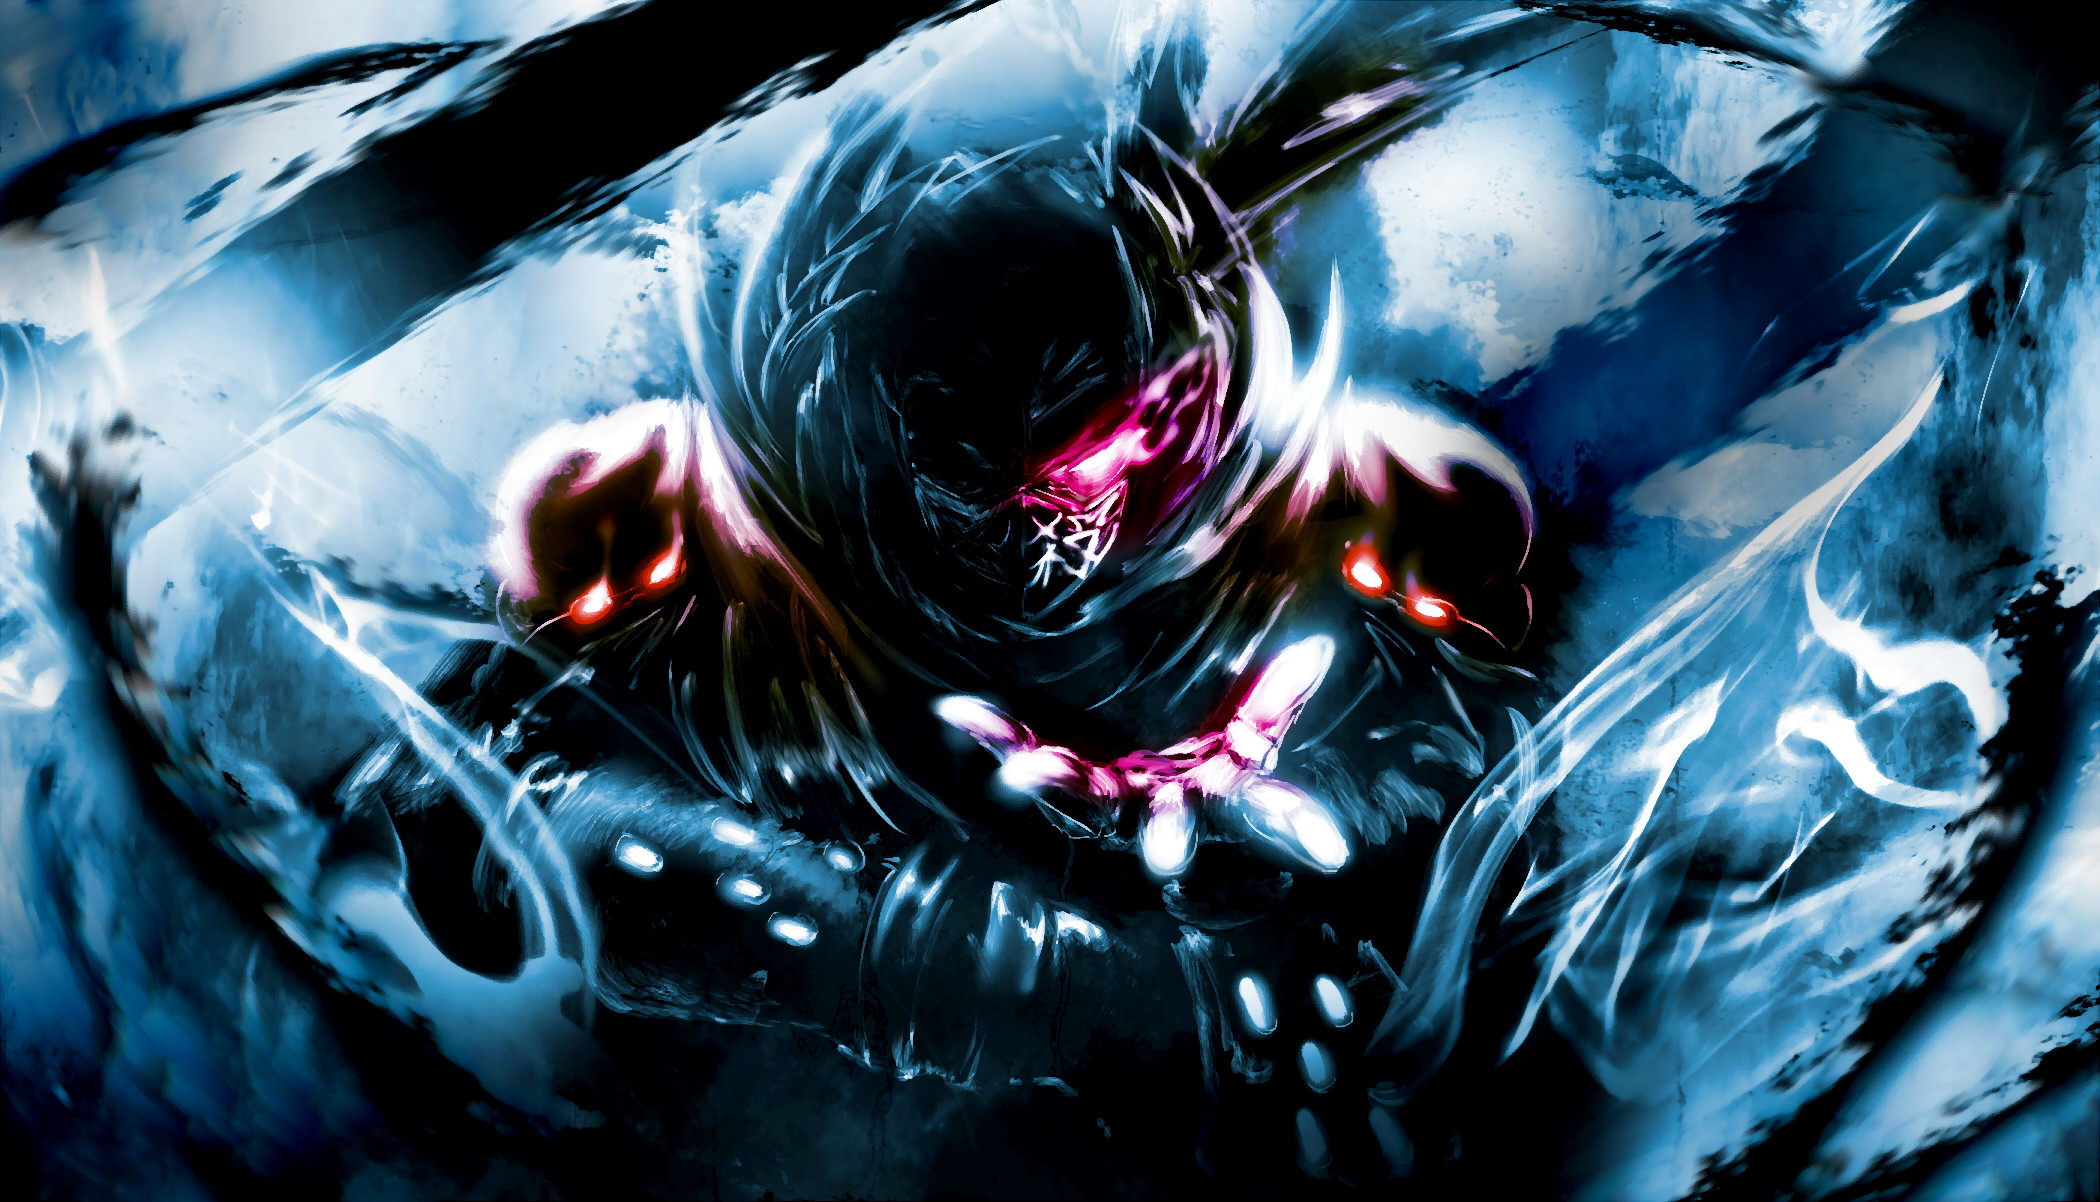 Epic Anime Fighting Wallpapers Mobile